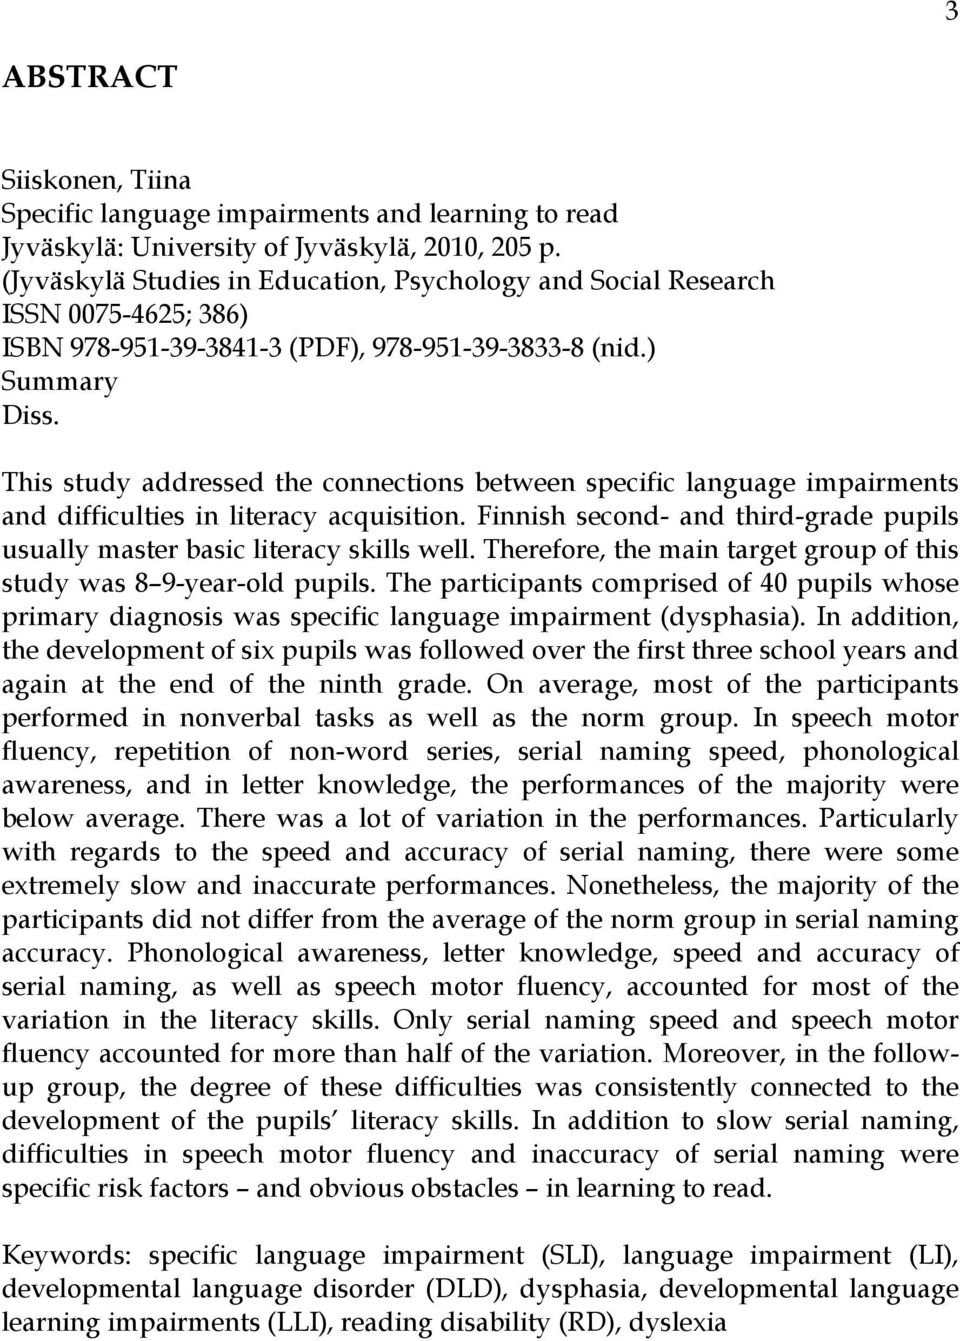 This study addressed the connections between specific language impairments and difficulties in literacy acquisition. Finnish second- and third-grade pupils usually master basic literacy skills well.